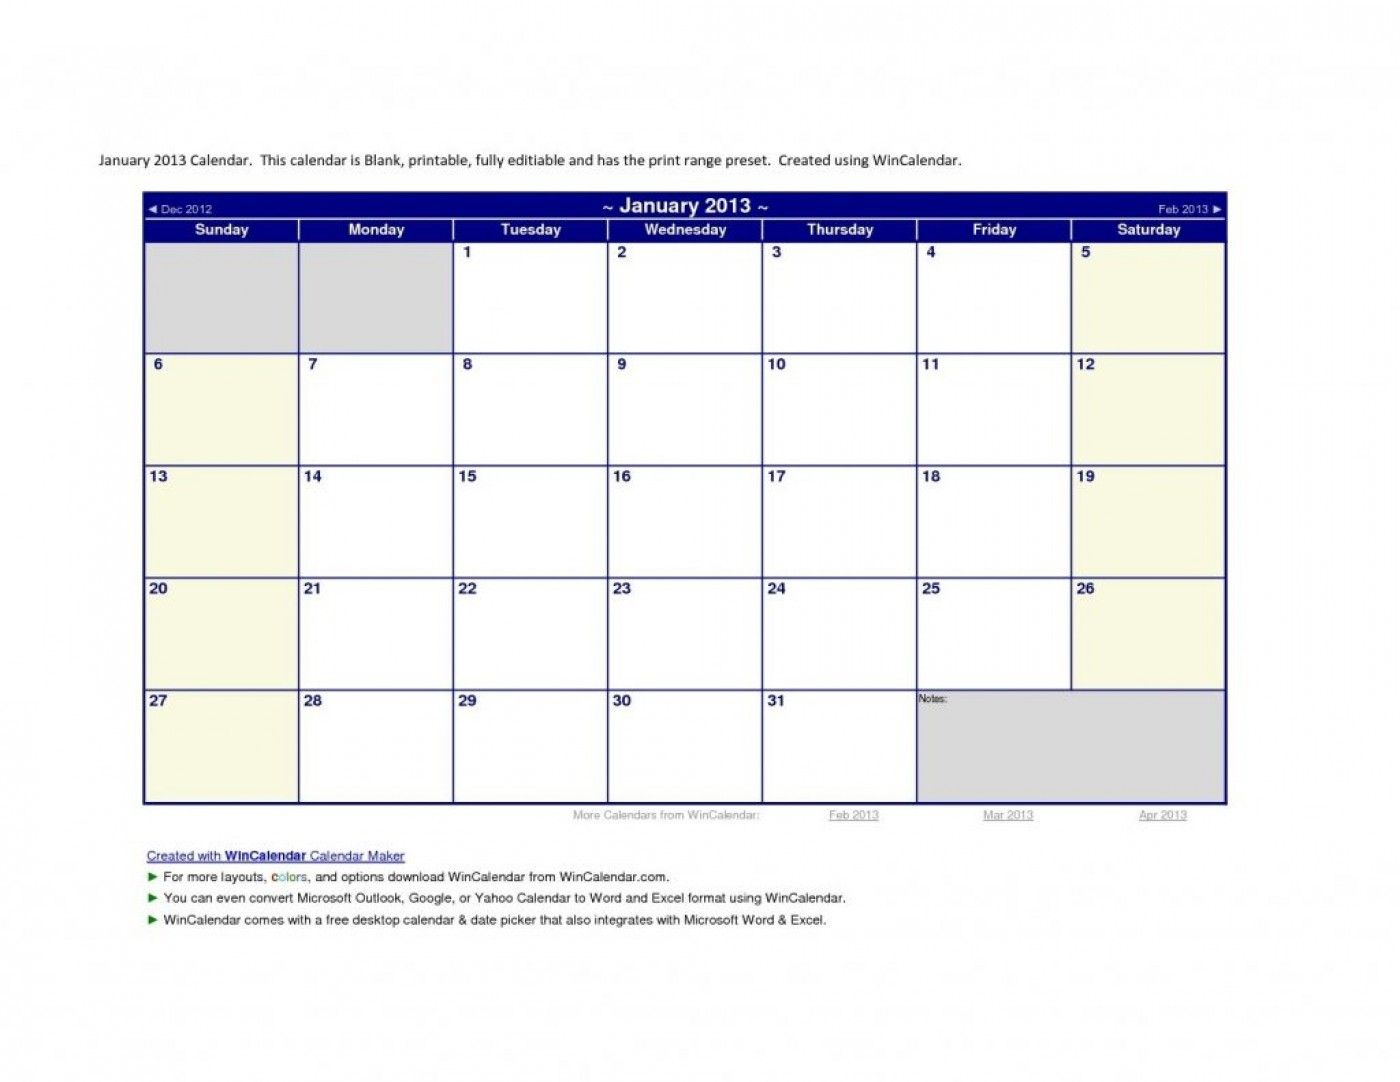 014 Template Ideas Weekly Schedule Microsoft Word Templates within Wincalendar January 2020